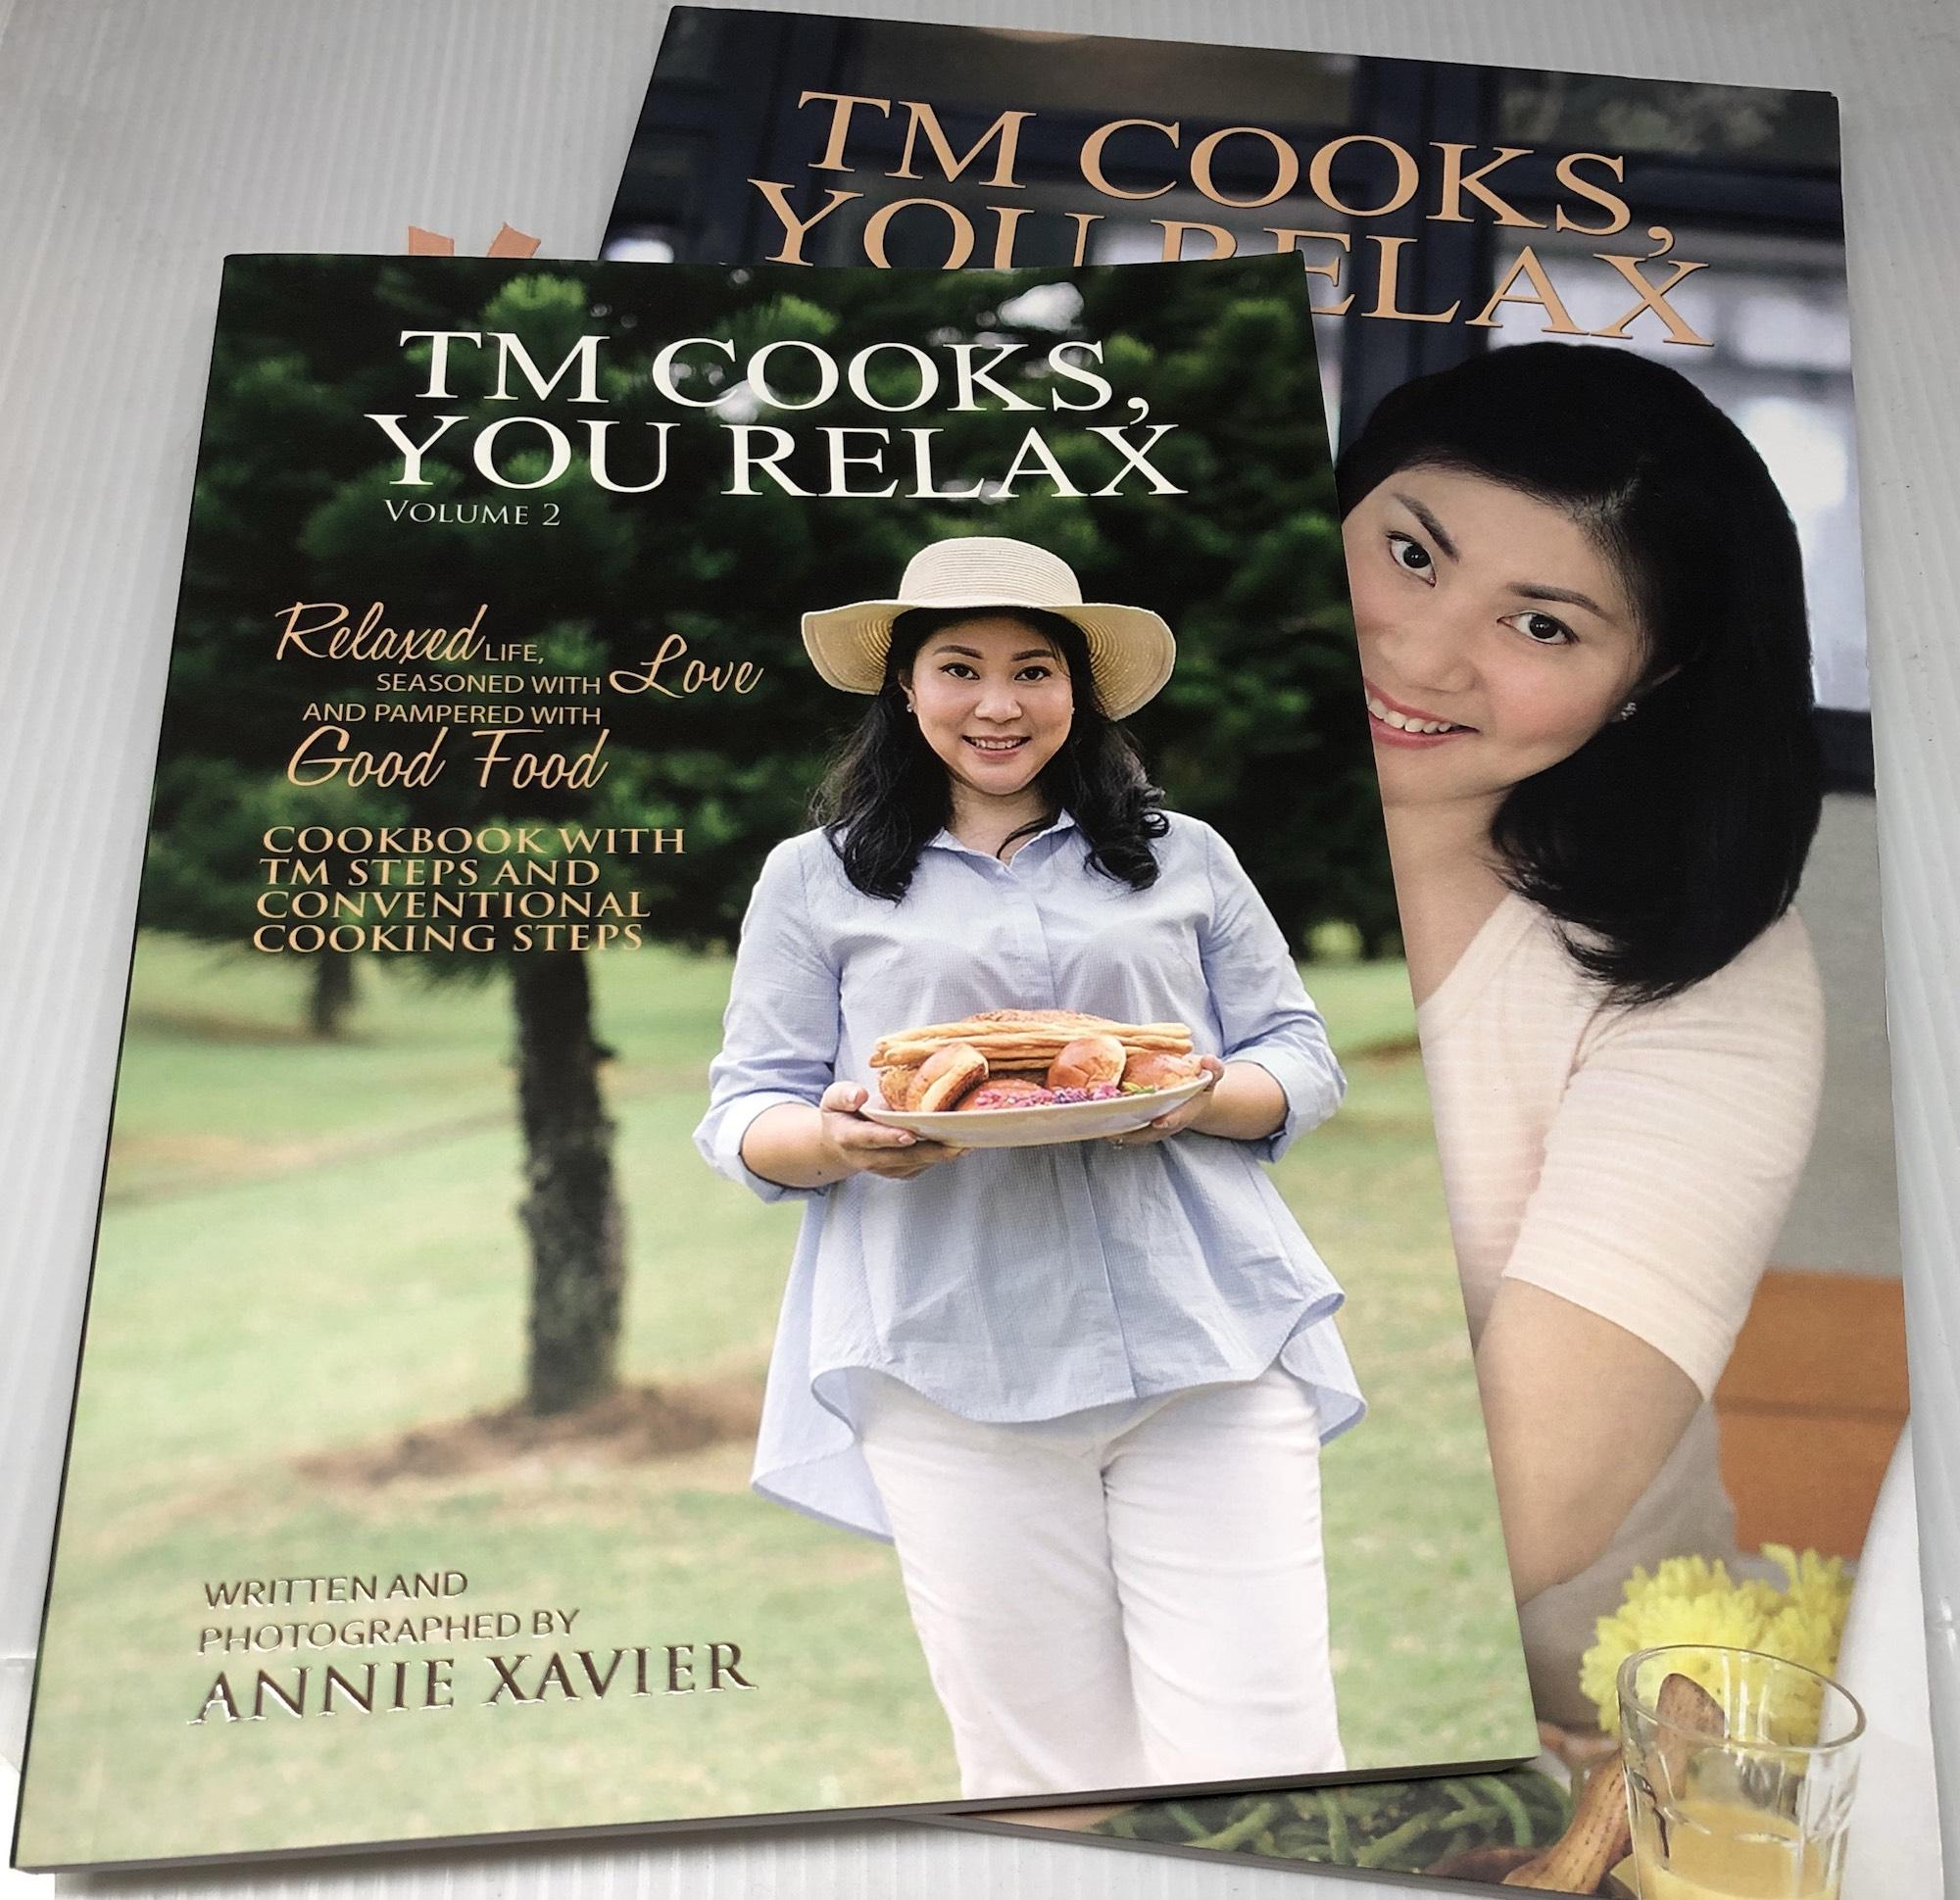 Tm Cooks You Relax Vol 1 And 2 Bundle Thermomix Cookbook Sale